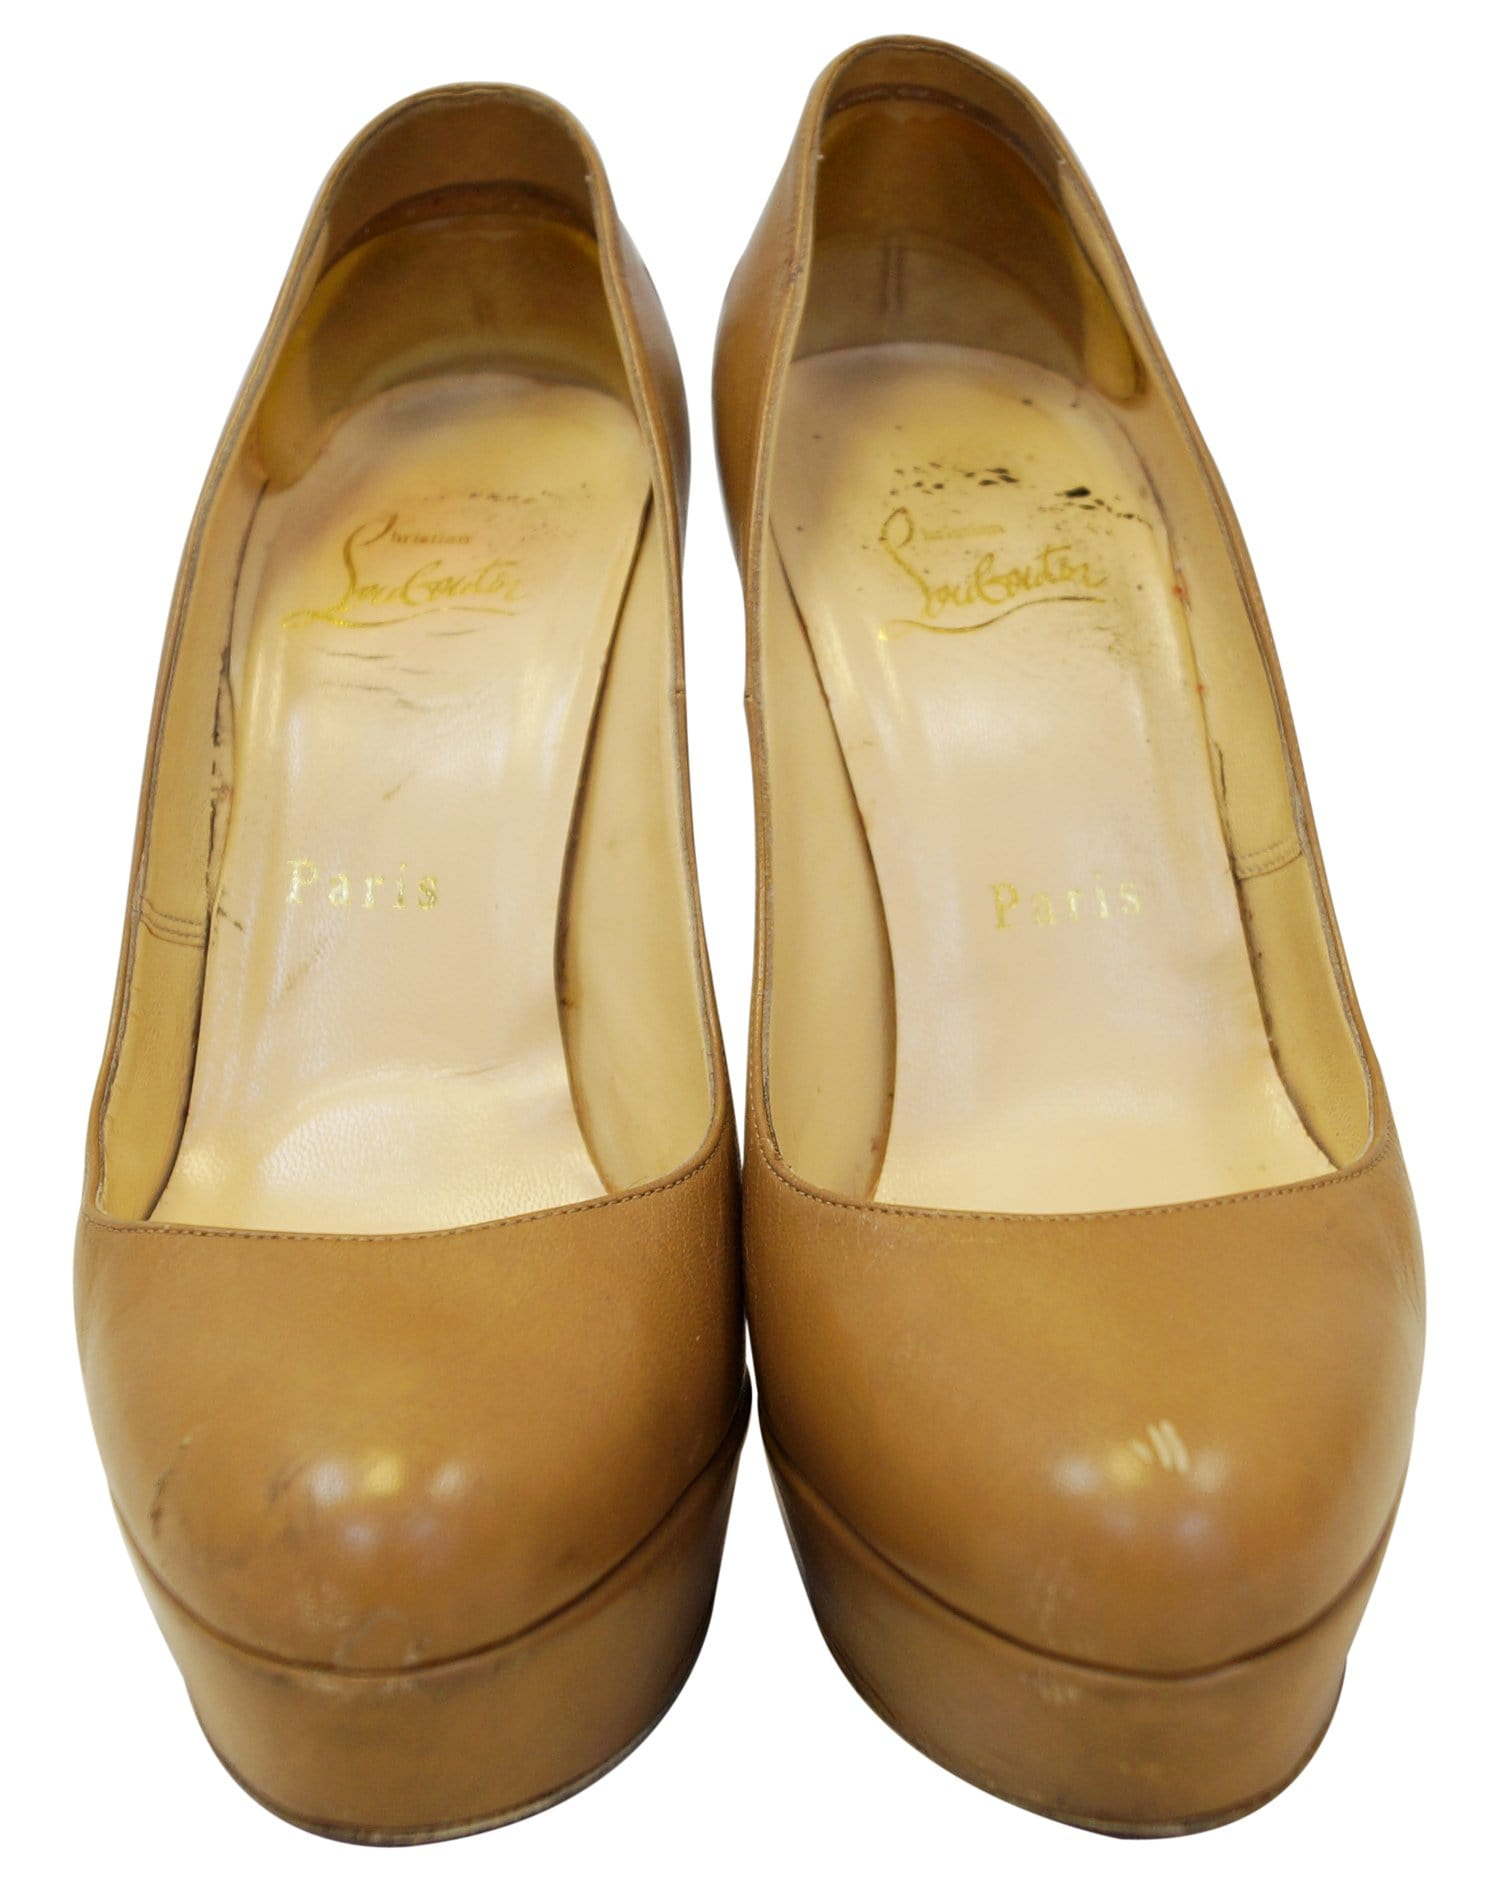 d76cf7e1b95 Christian Louboutin Bianca 140 Platform Leather Camel Pumps